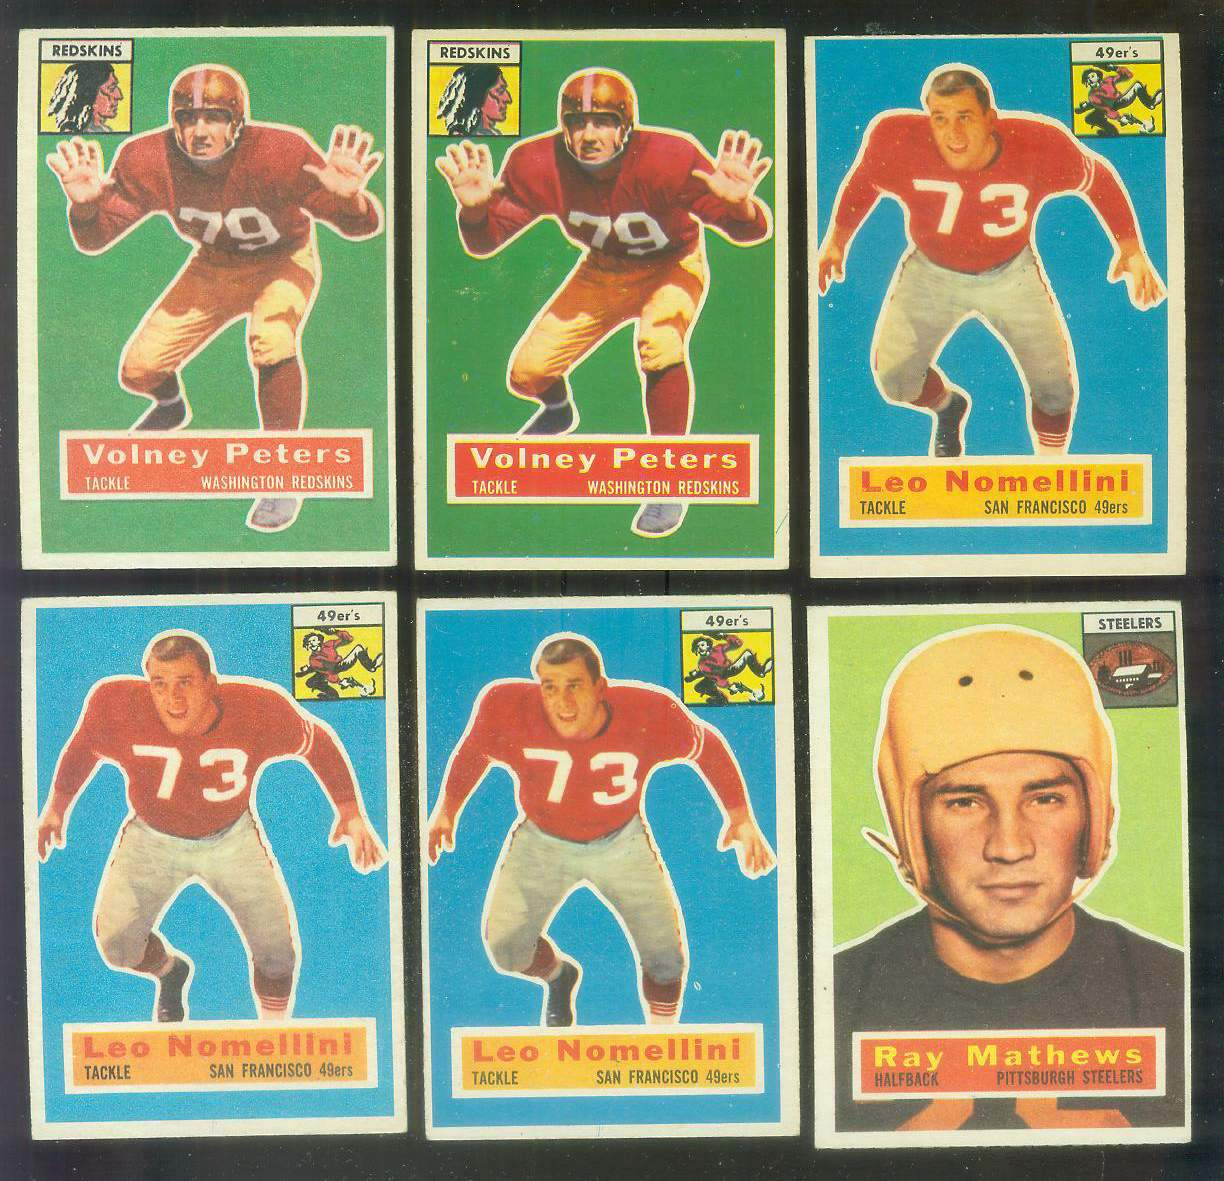 1956 Topps FB #.73 Volney Peters SHORT PRINT (Redskins) Football cards value